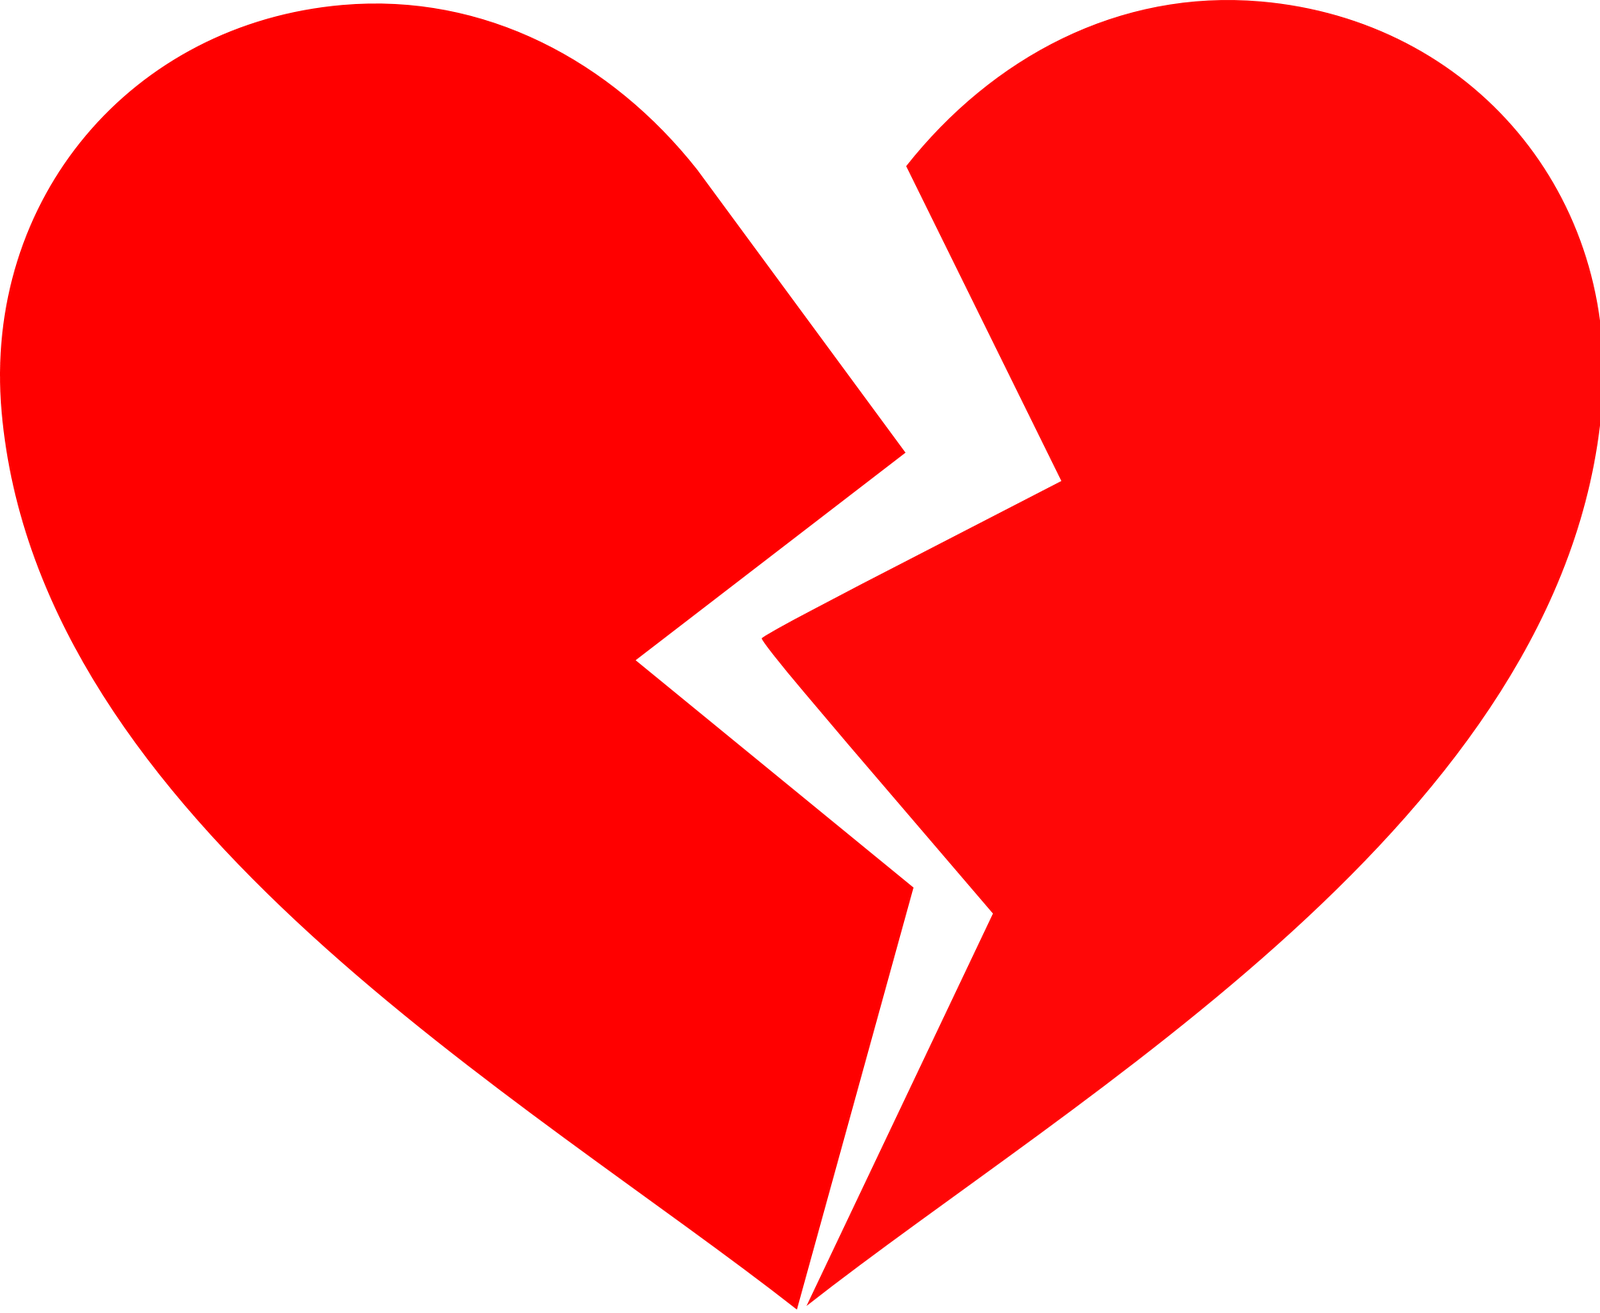 Heart break clipart picture freeuse stock Broken Heart Clipart picture freeuse stock